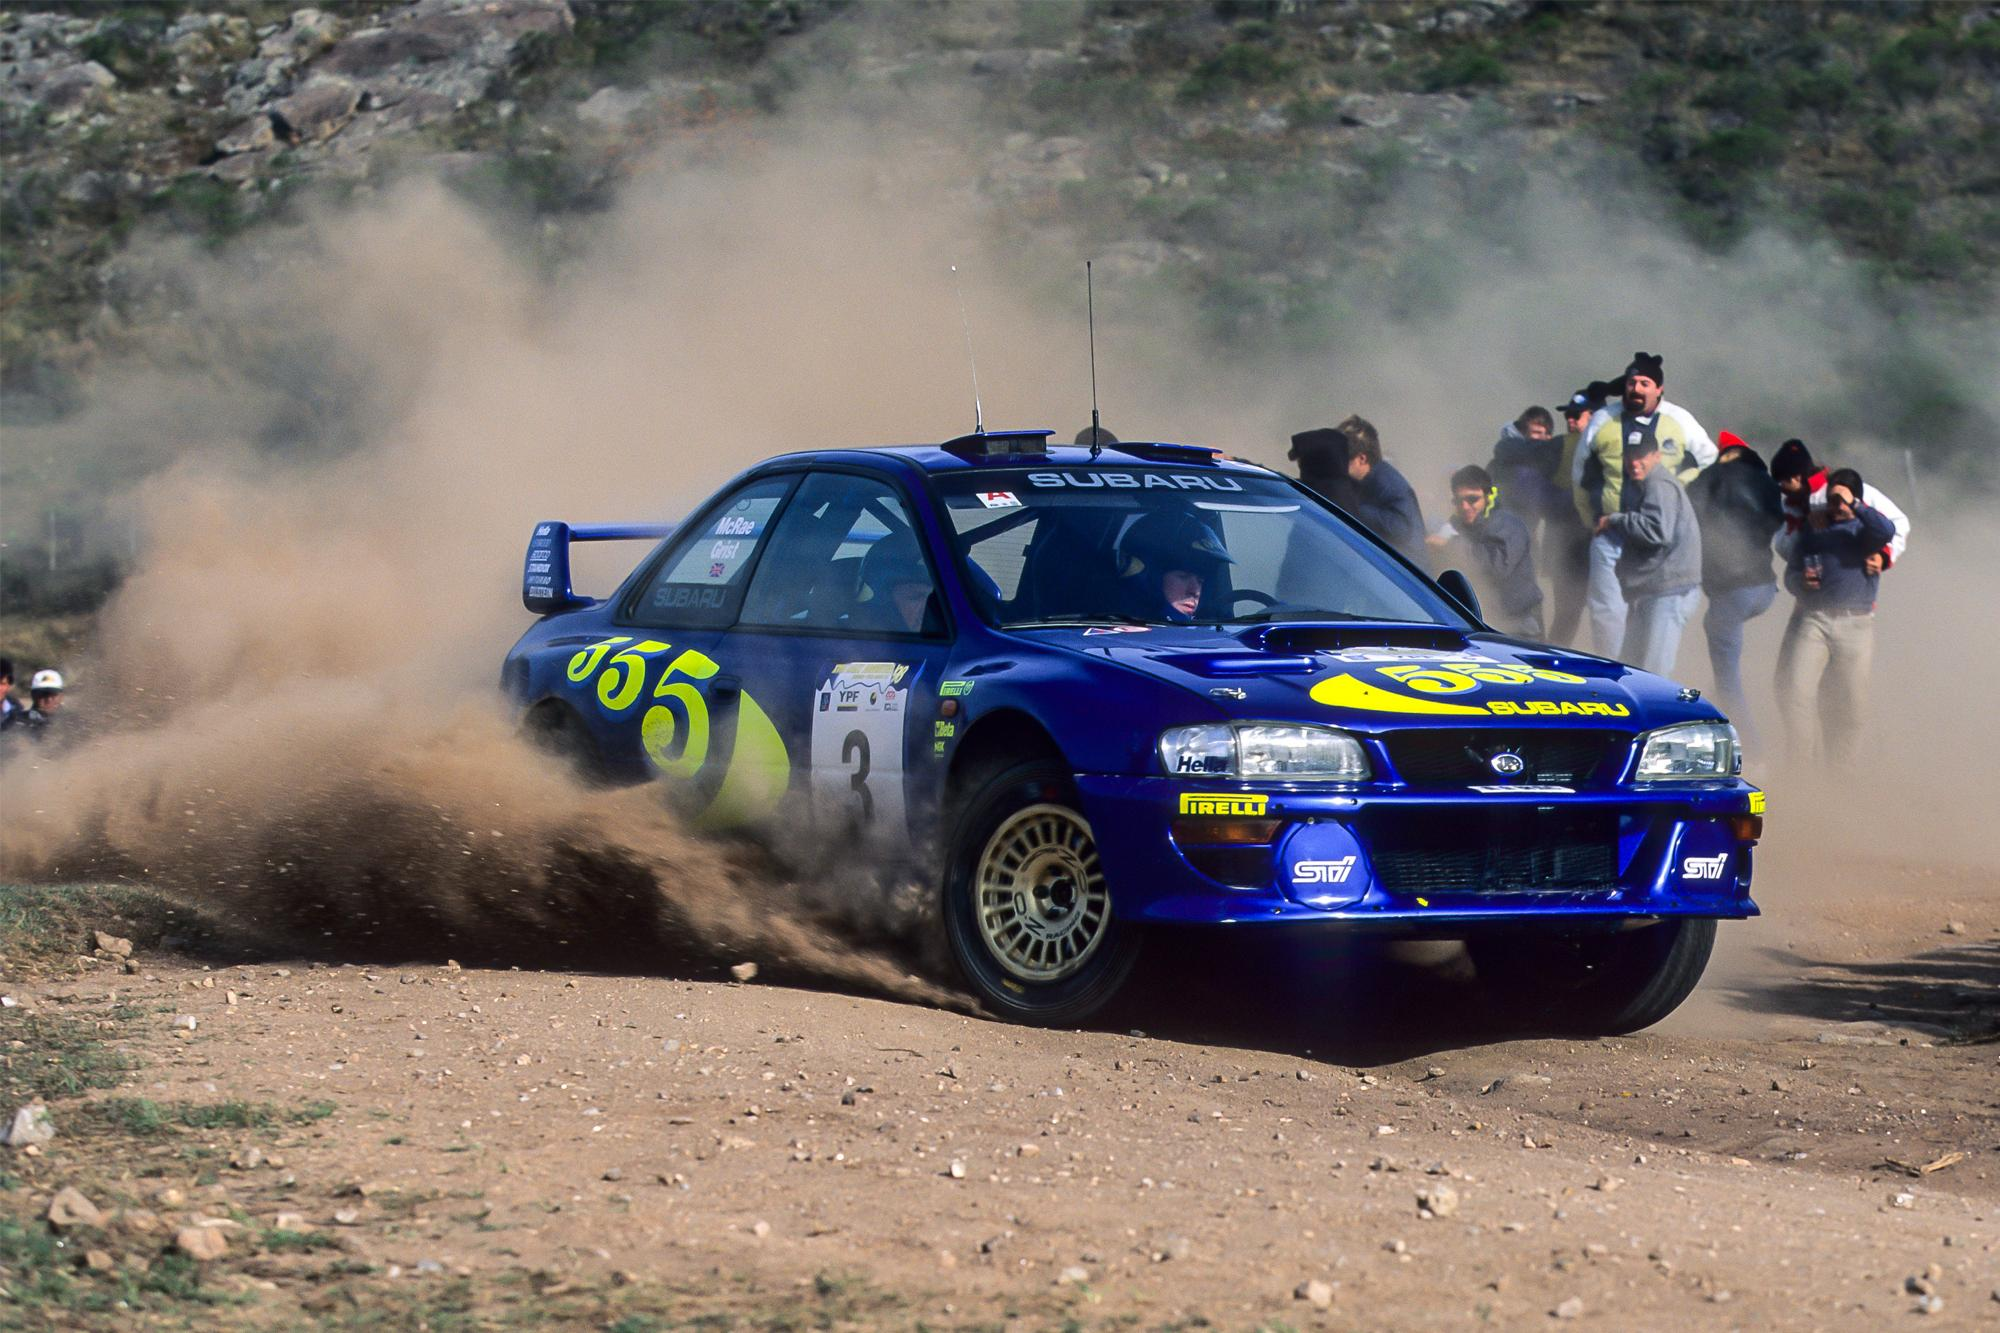 Flat out, η ζωή του Colin McRae